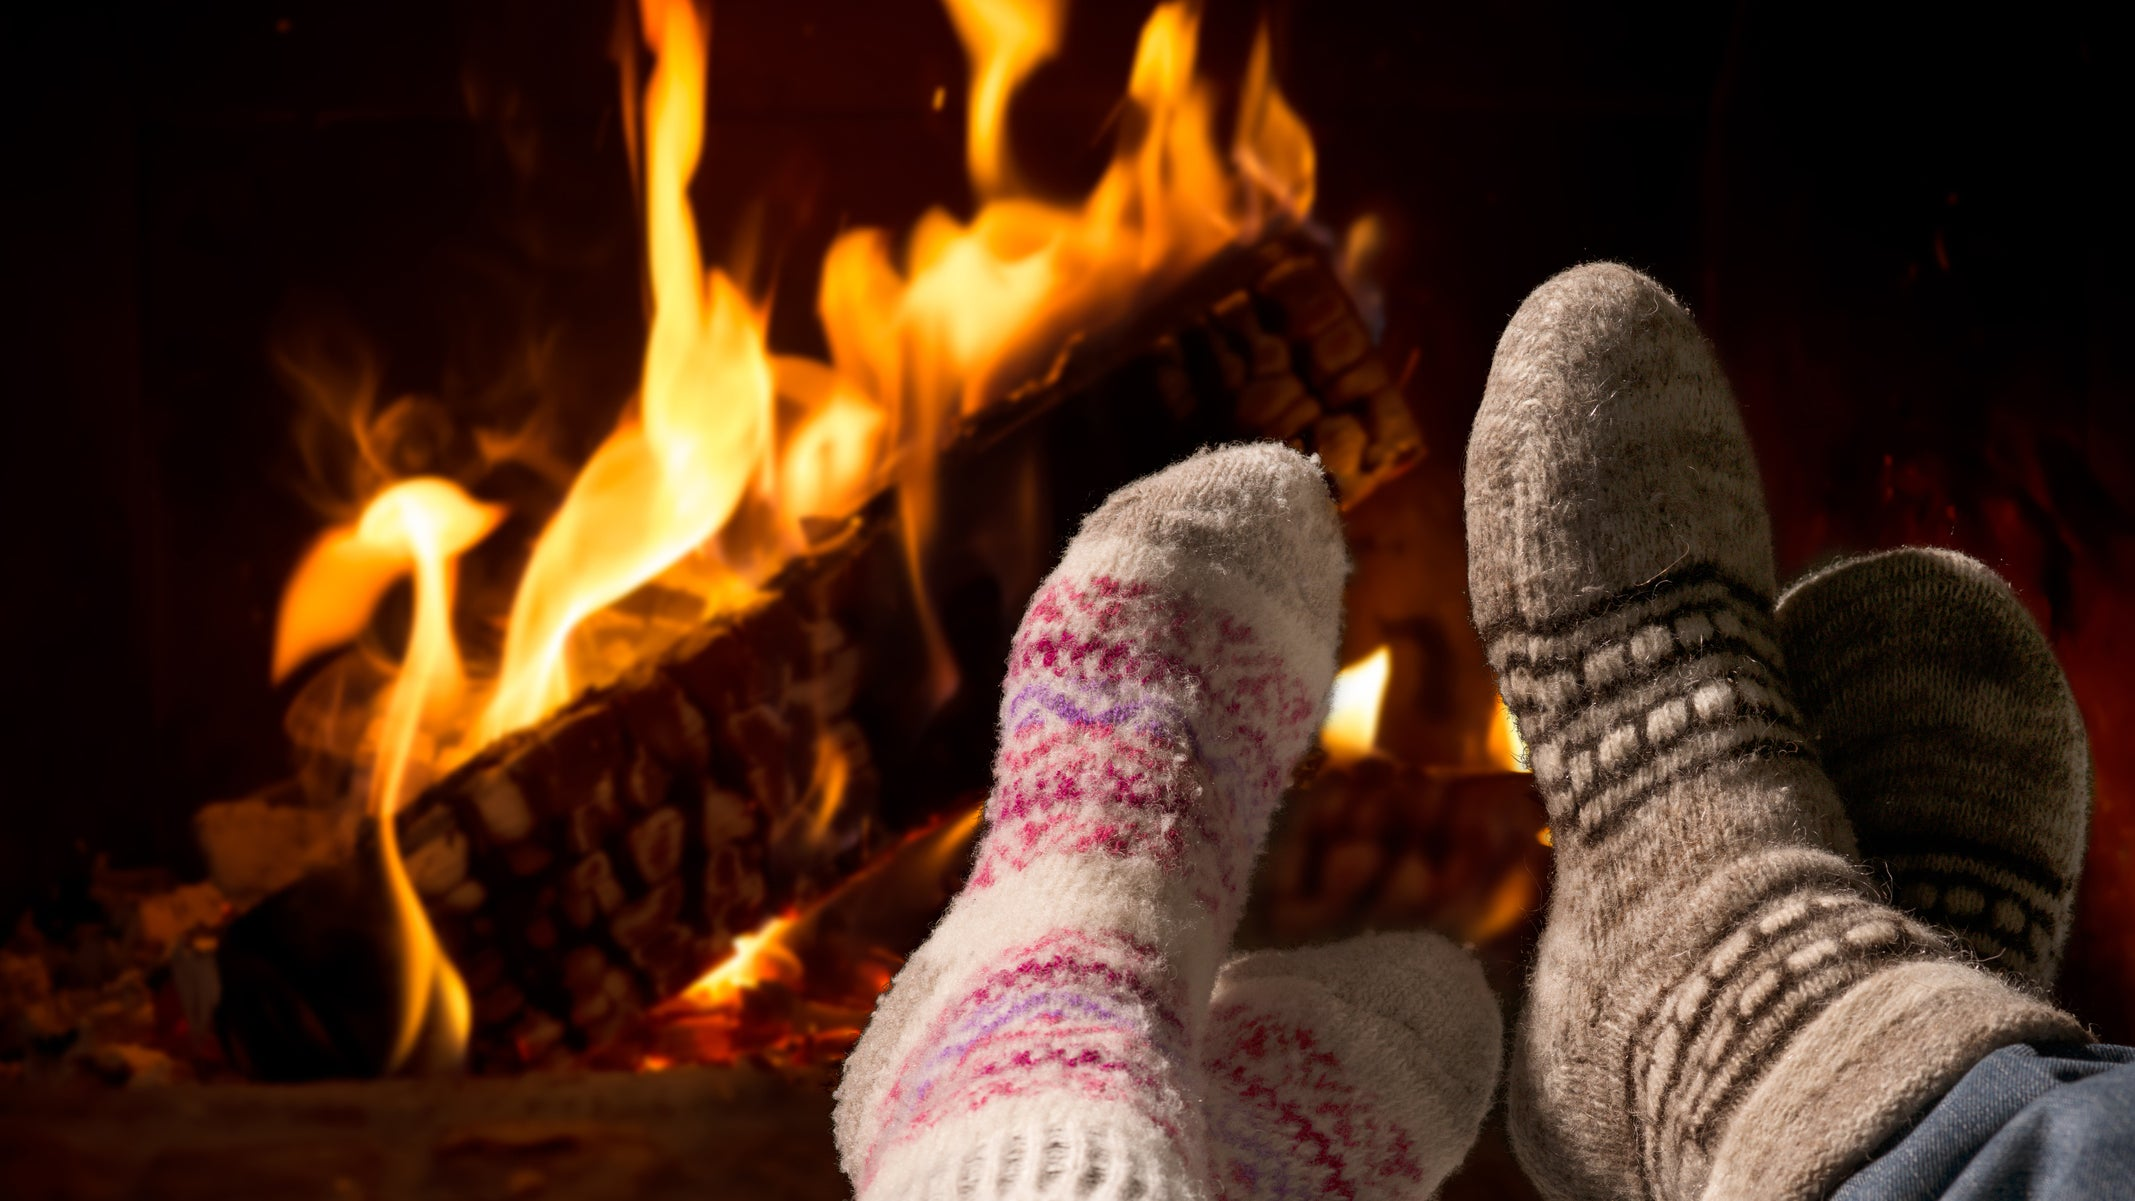 Things to Check Before Using Your Fireplace